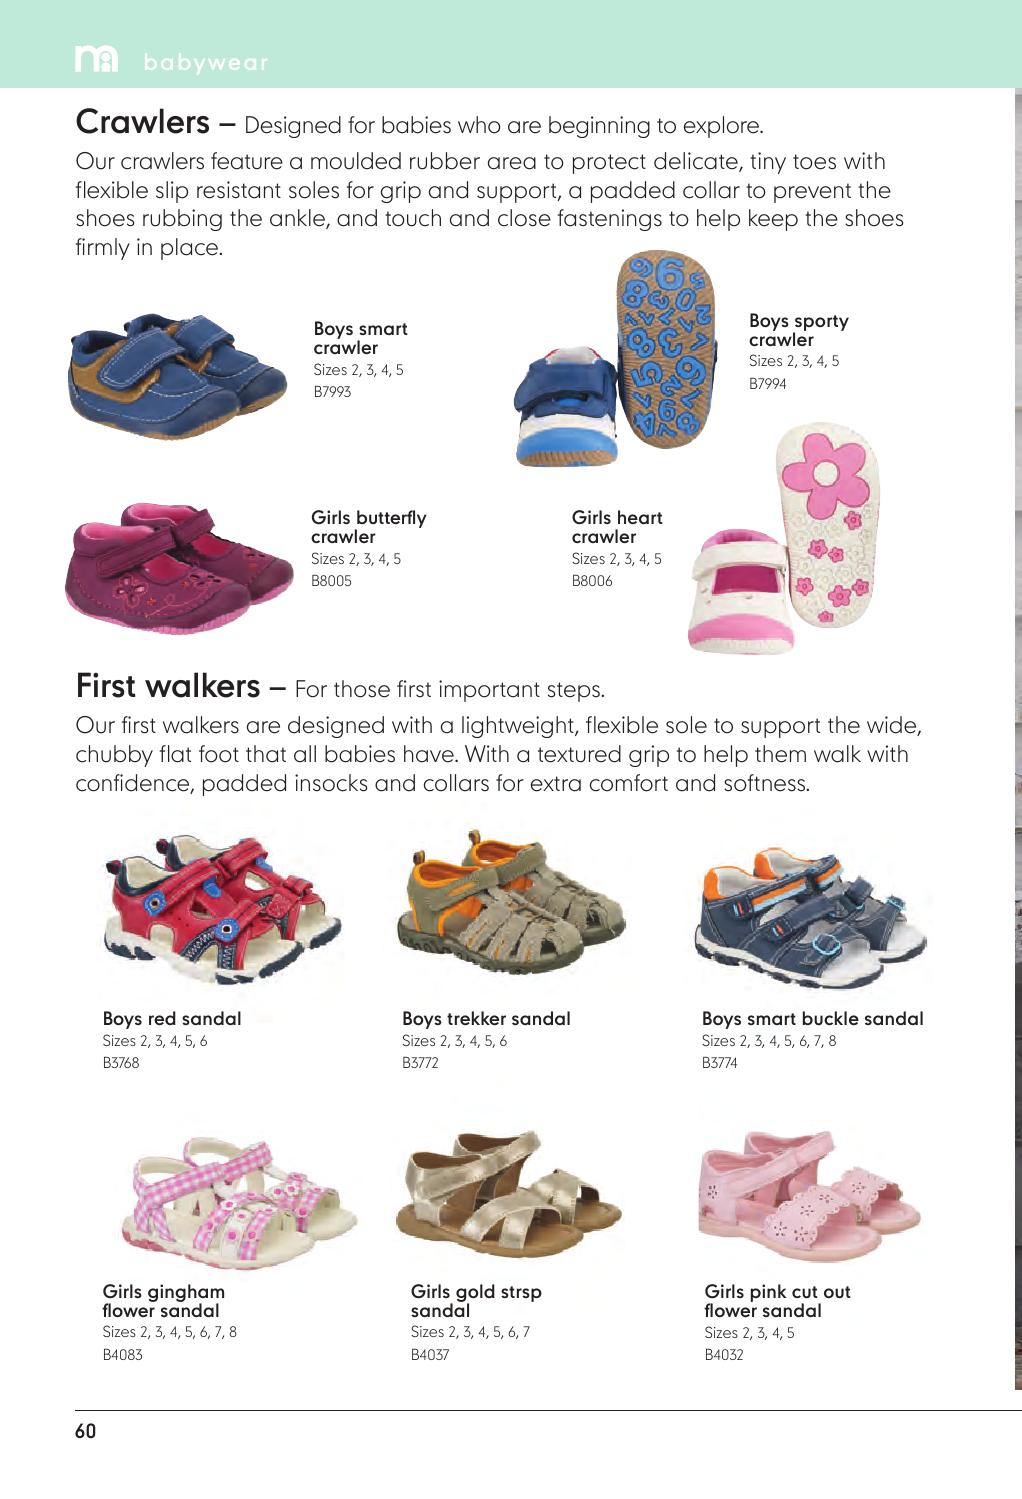 860ec3b91ddc Mothercare Singapore Catalogue 2015 2016 by Mothercare SG - issuu